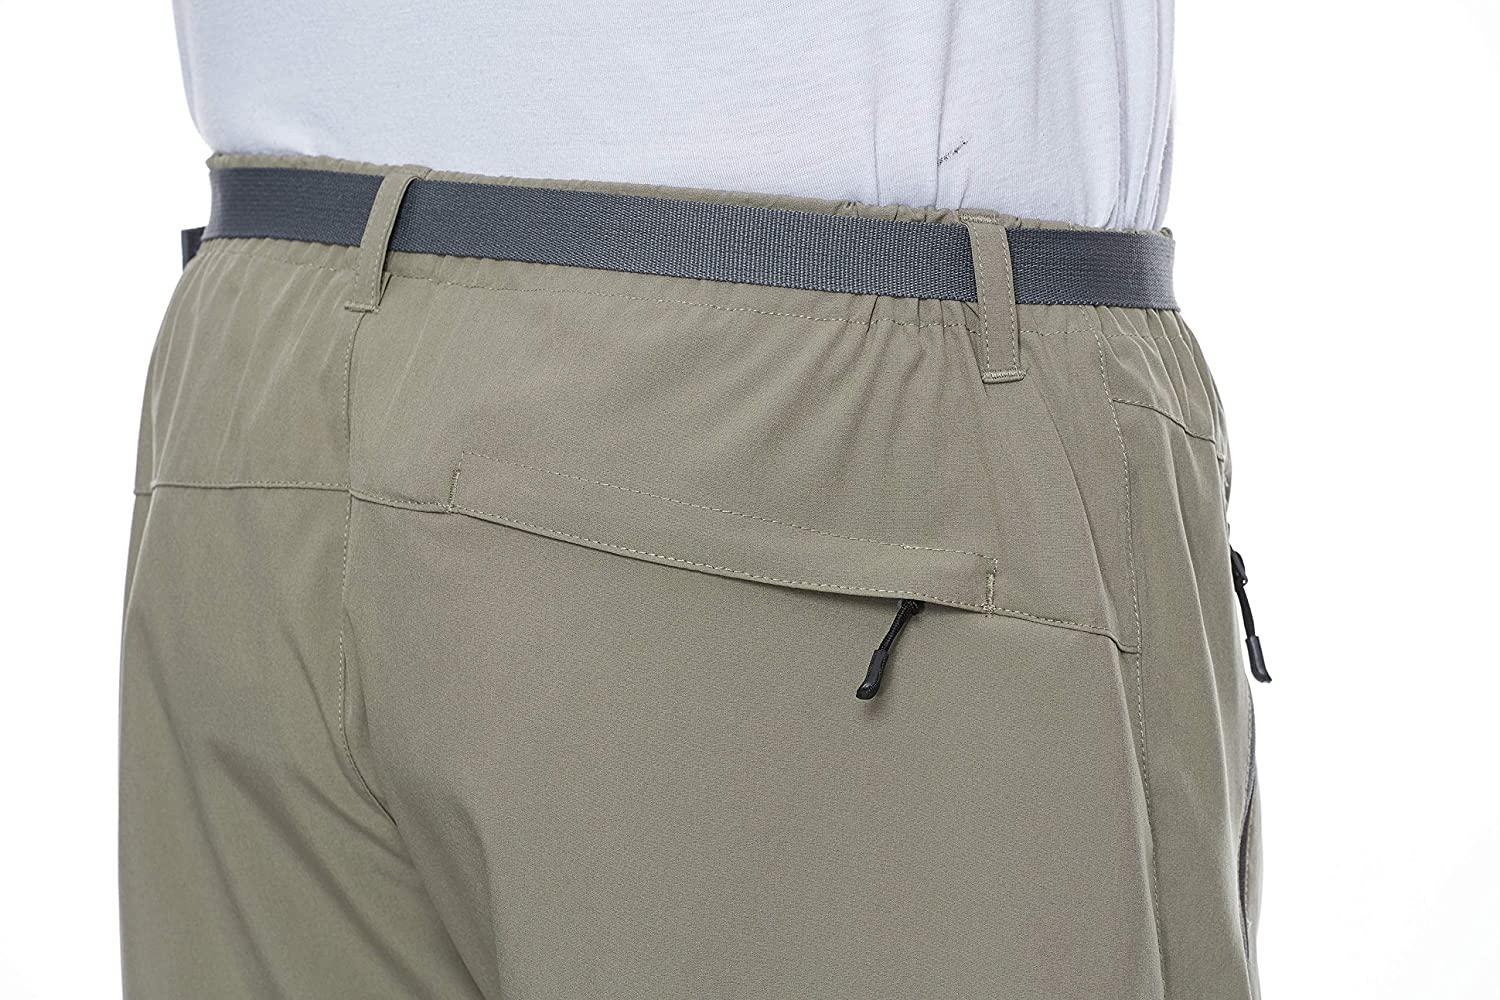 Camping Travel Little Donkey Andy Mens Stretch Quick Dry Cargo Shorts for Hiking